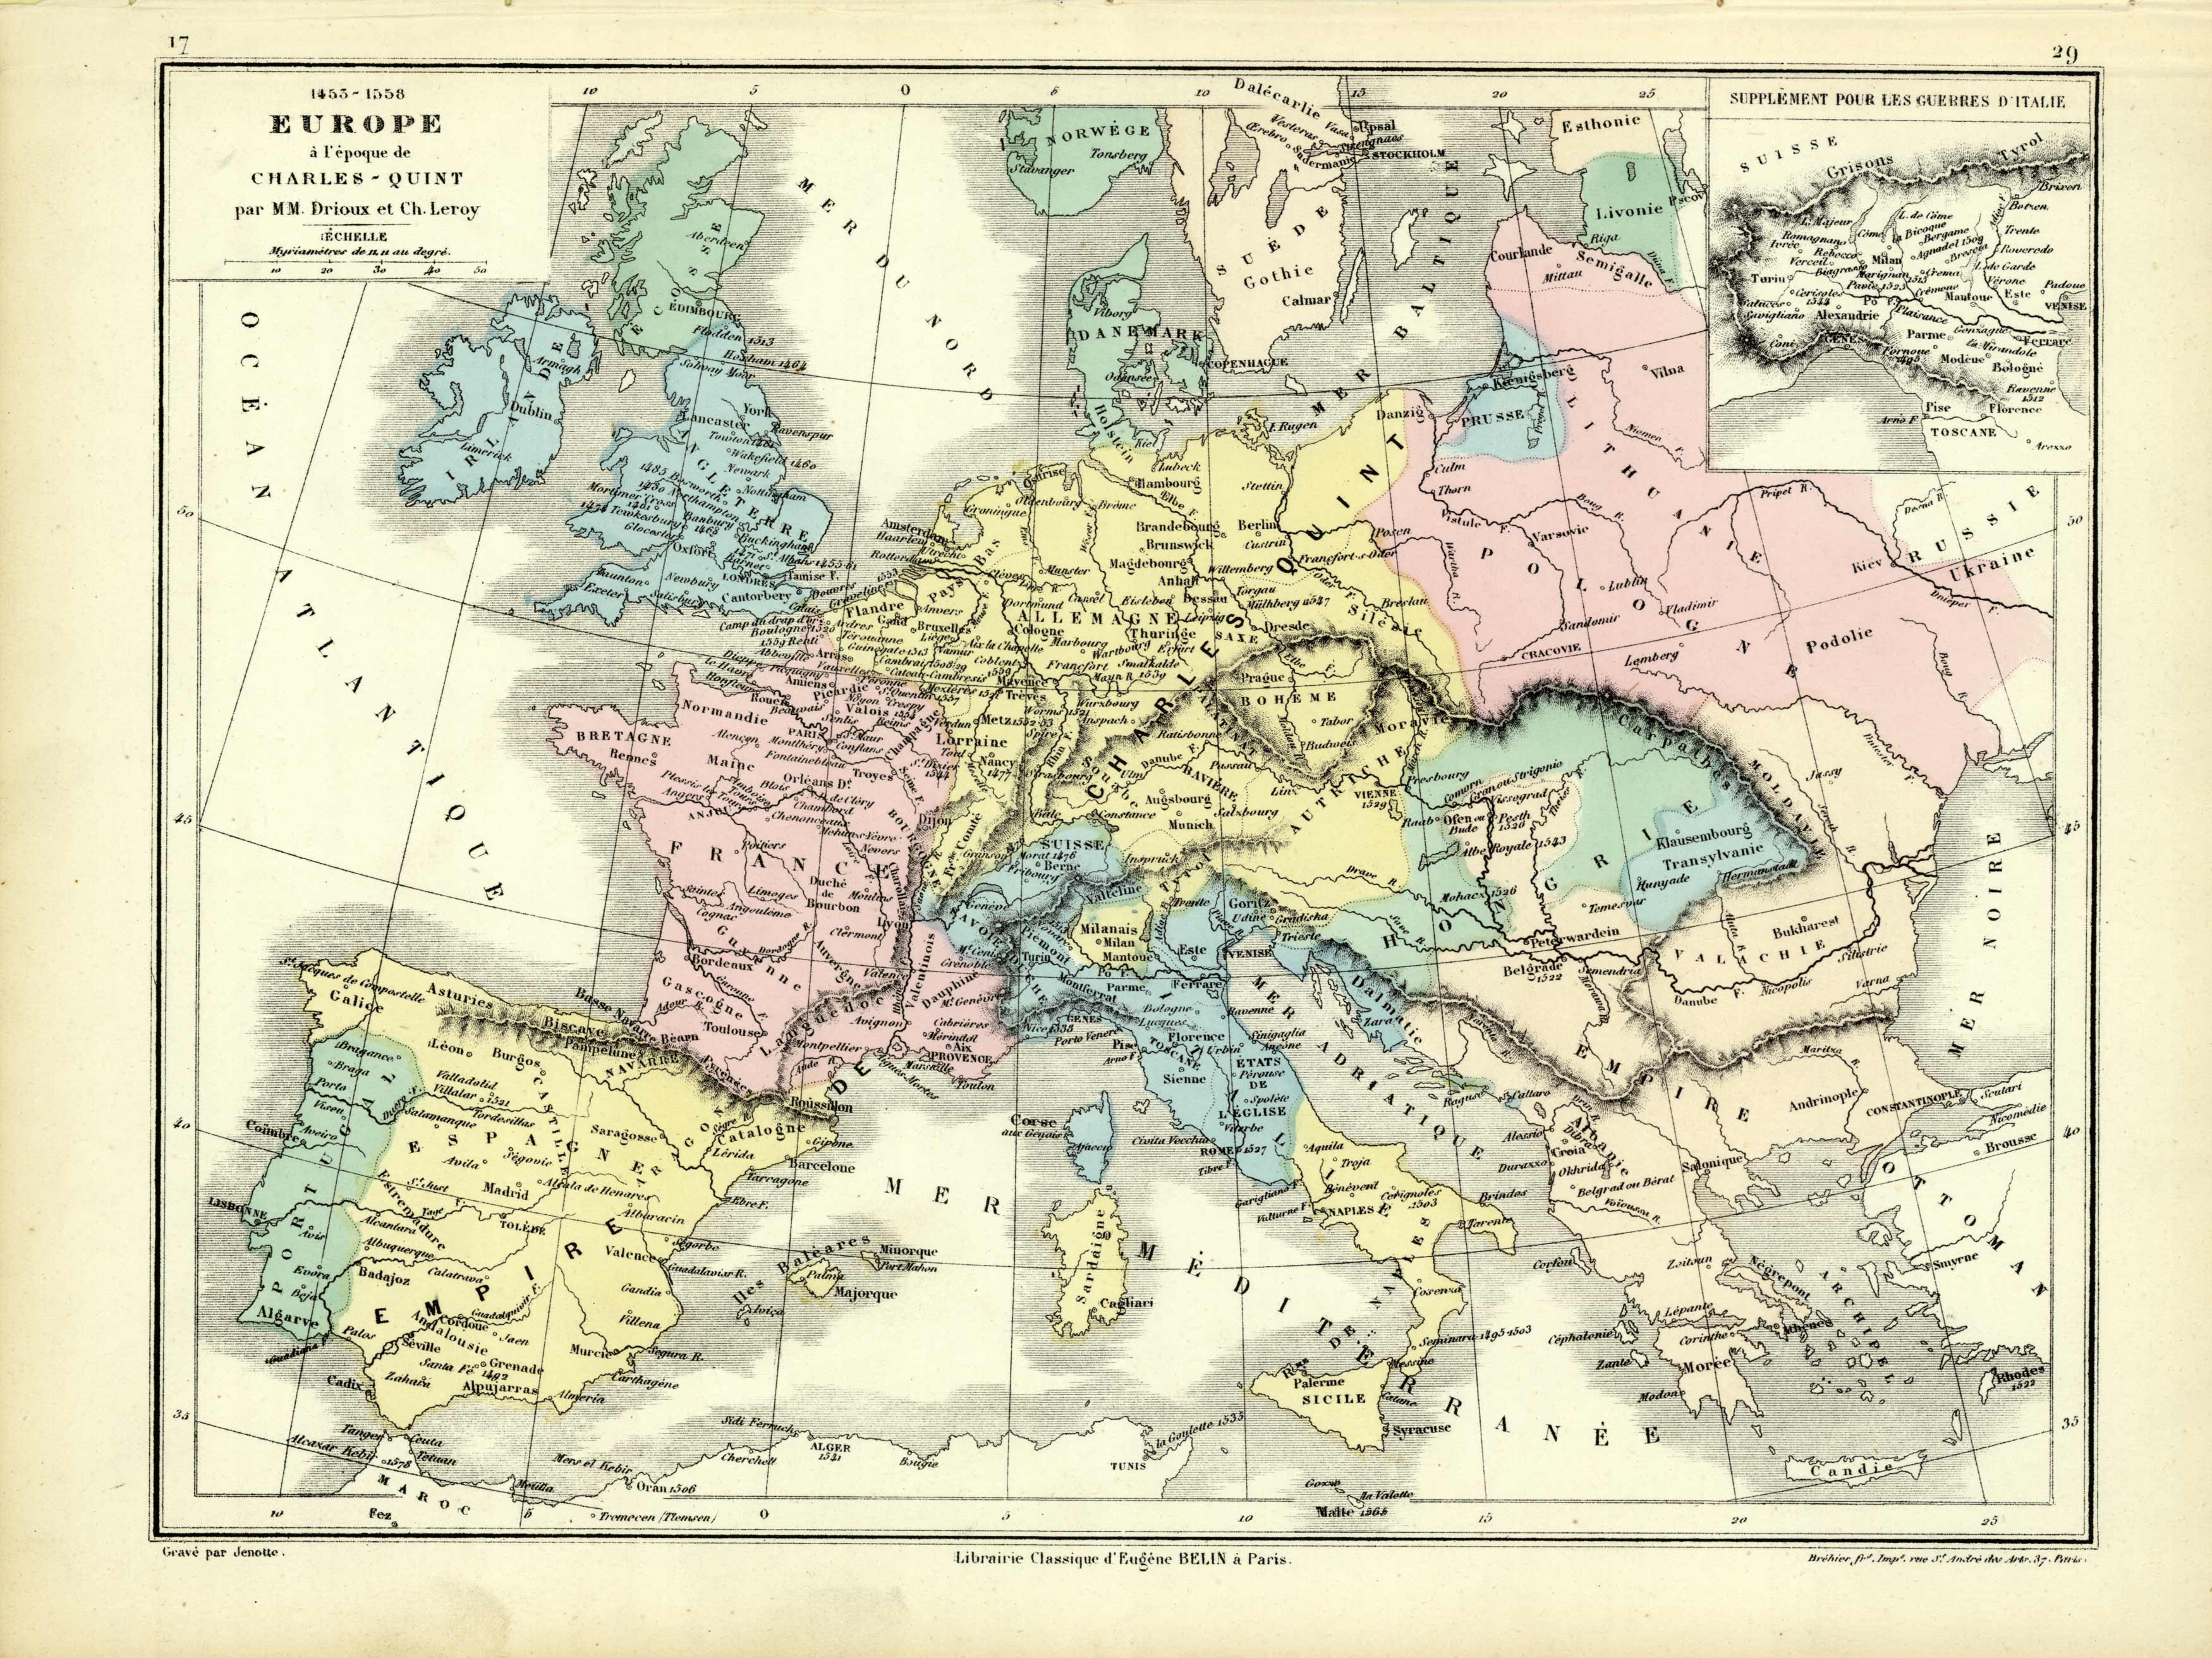 1453-1558 Europe a lepoque de Charles - Quint (1453-1558 Europe in the time of Charles Quint)'